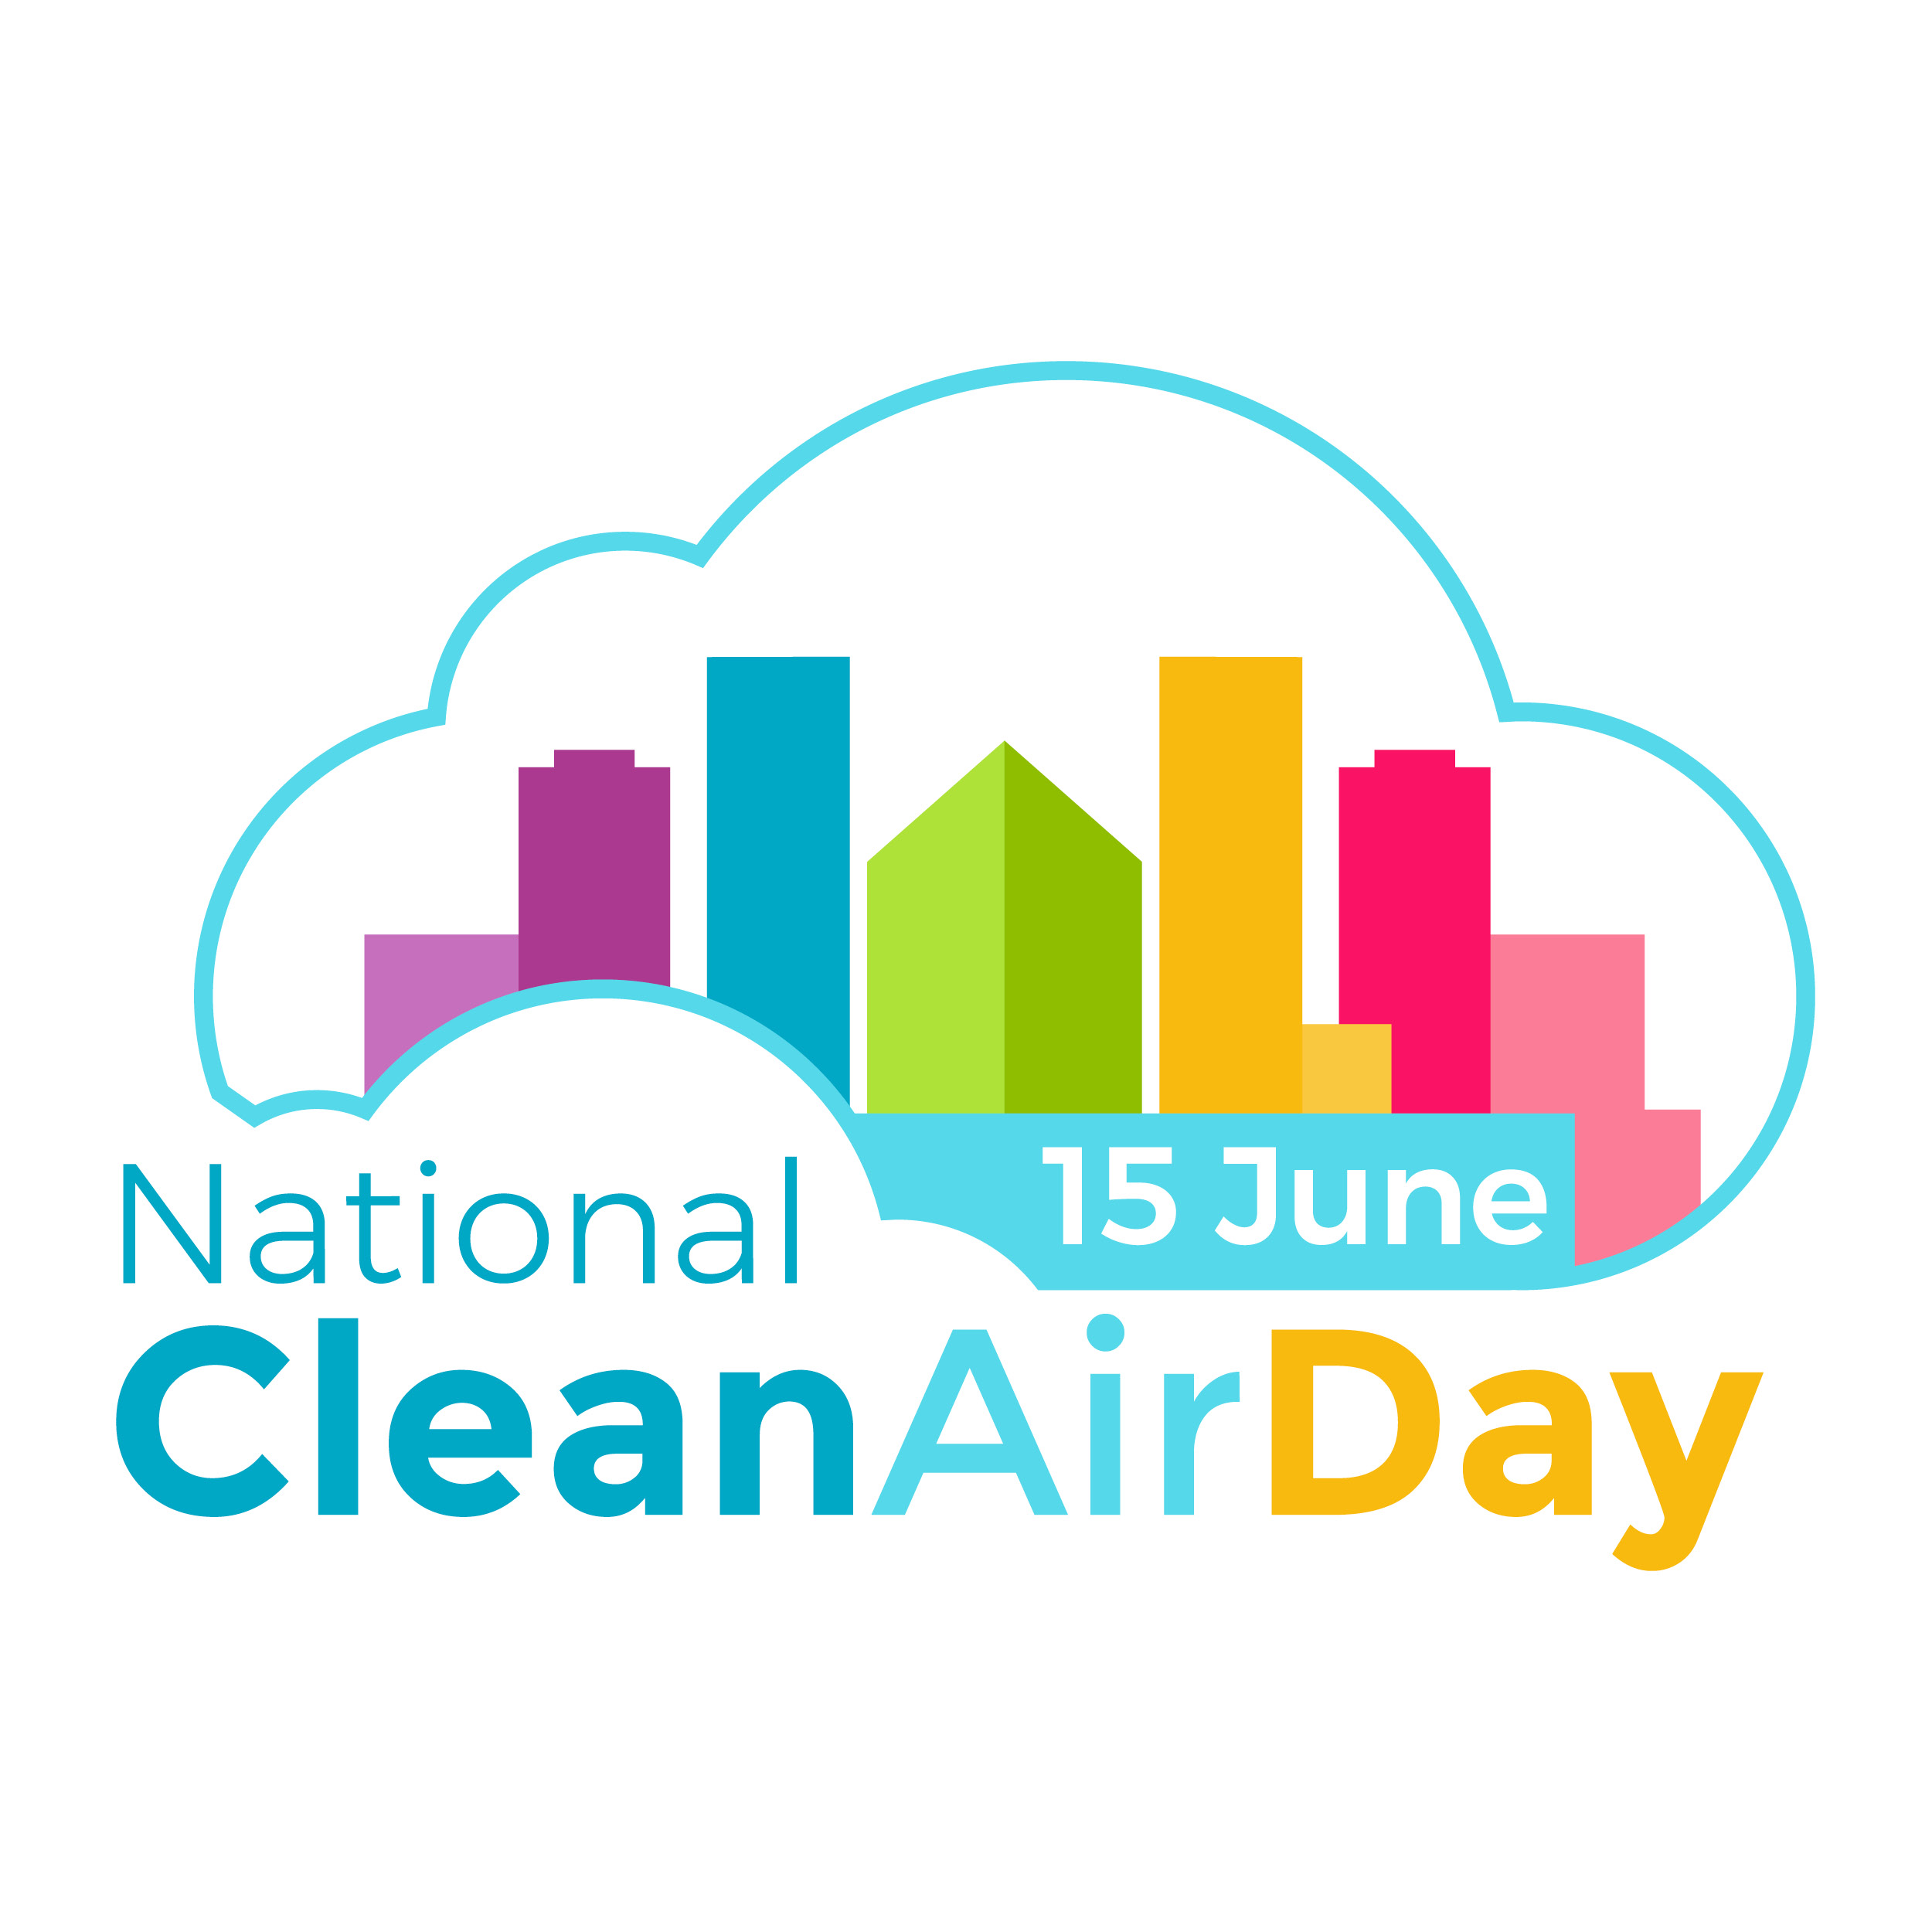 Clean_Air_Day_2.jpg